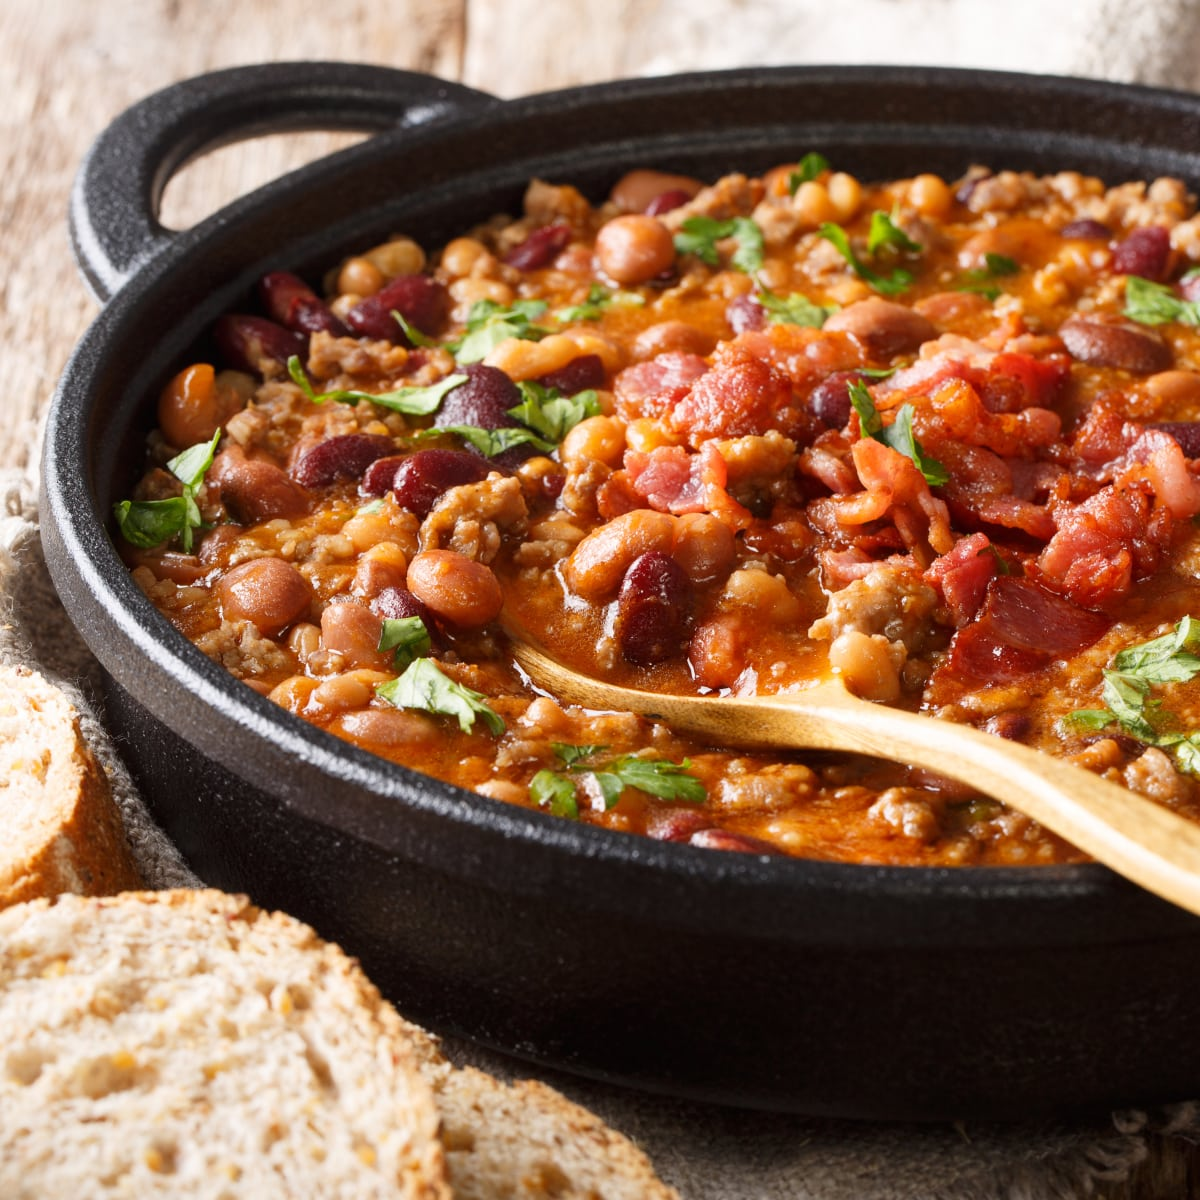 close up view of cast iron dutch oven with frijoles charros